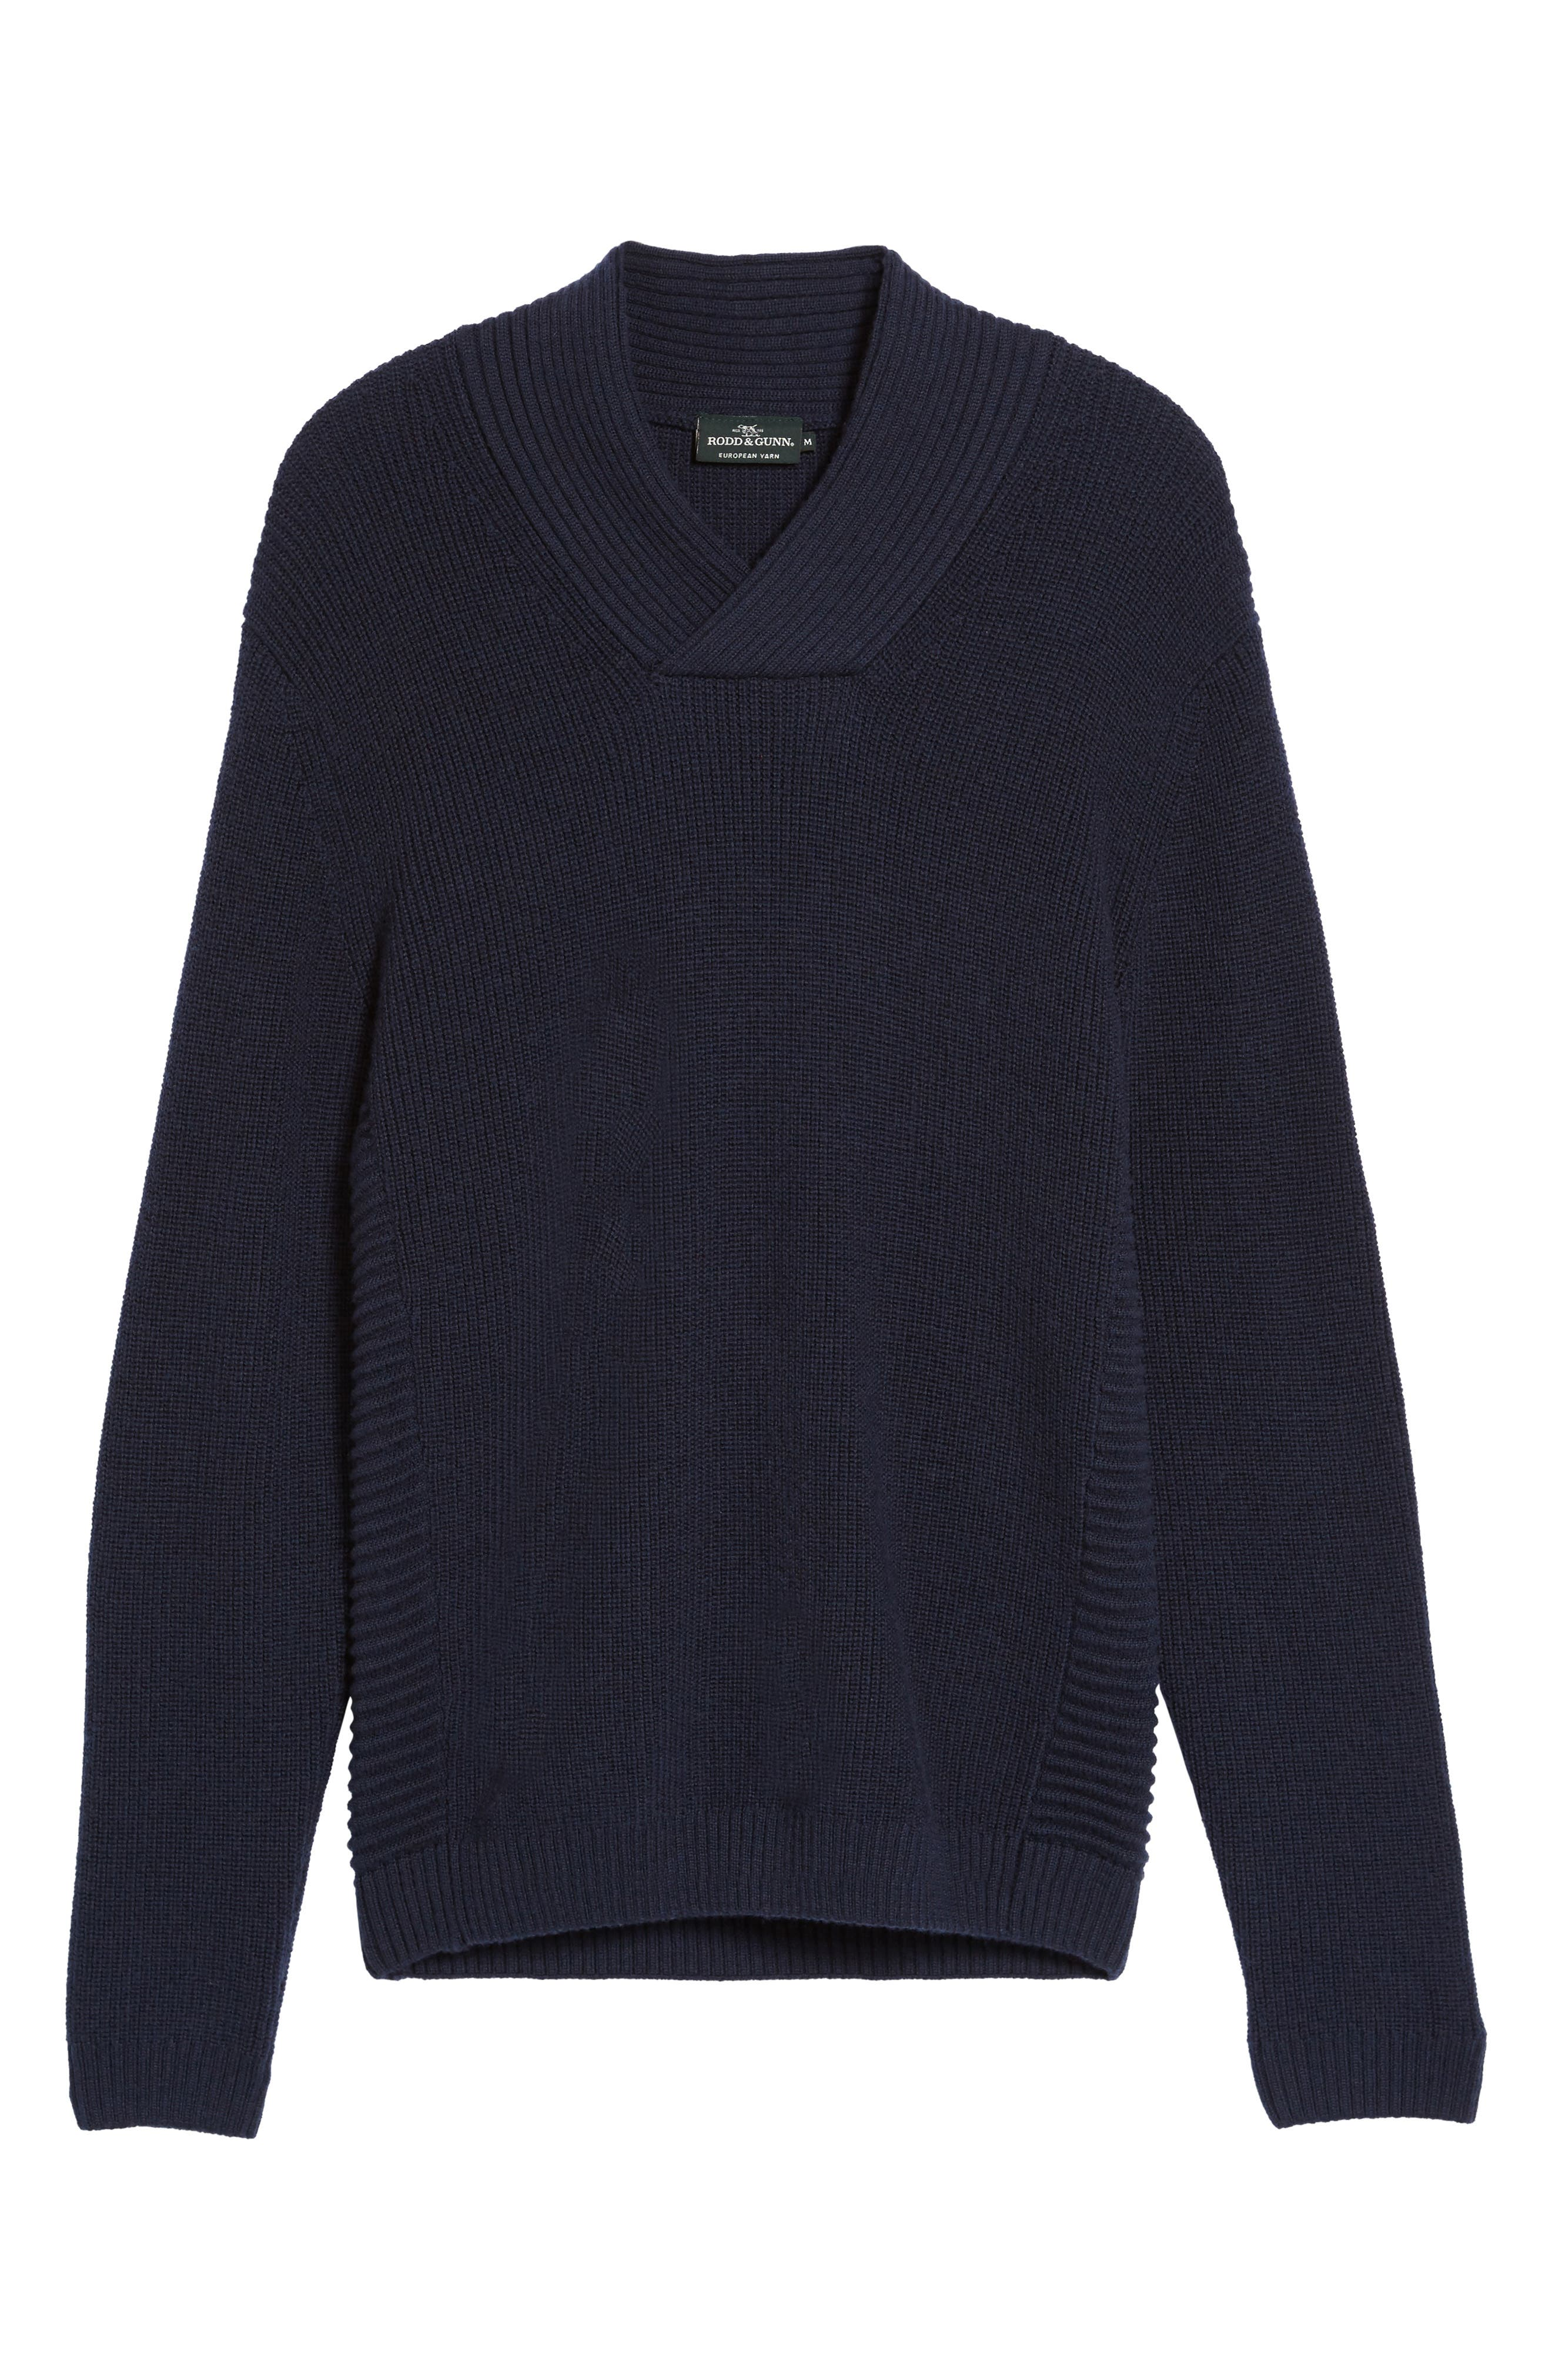 Charlesworth Suede Patch Merino Wool Sweater,                             Alternate thumbnail 7, color,                             Marine